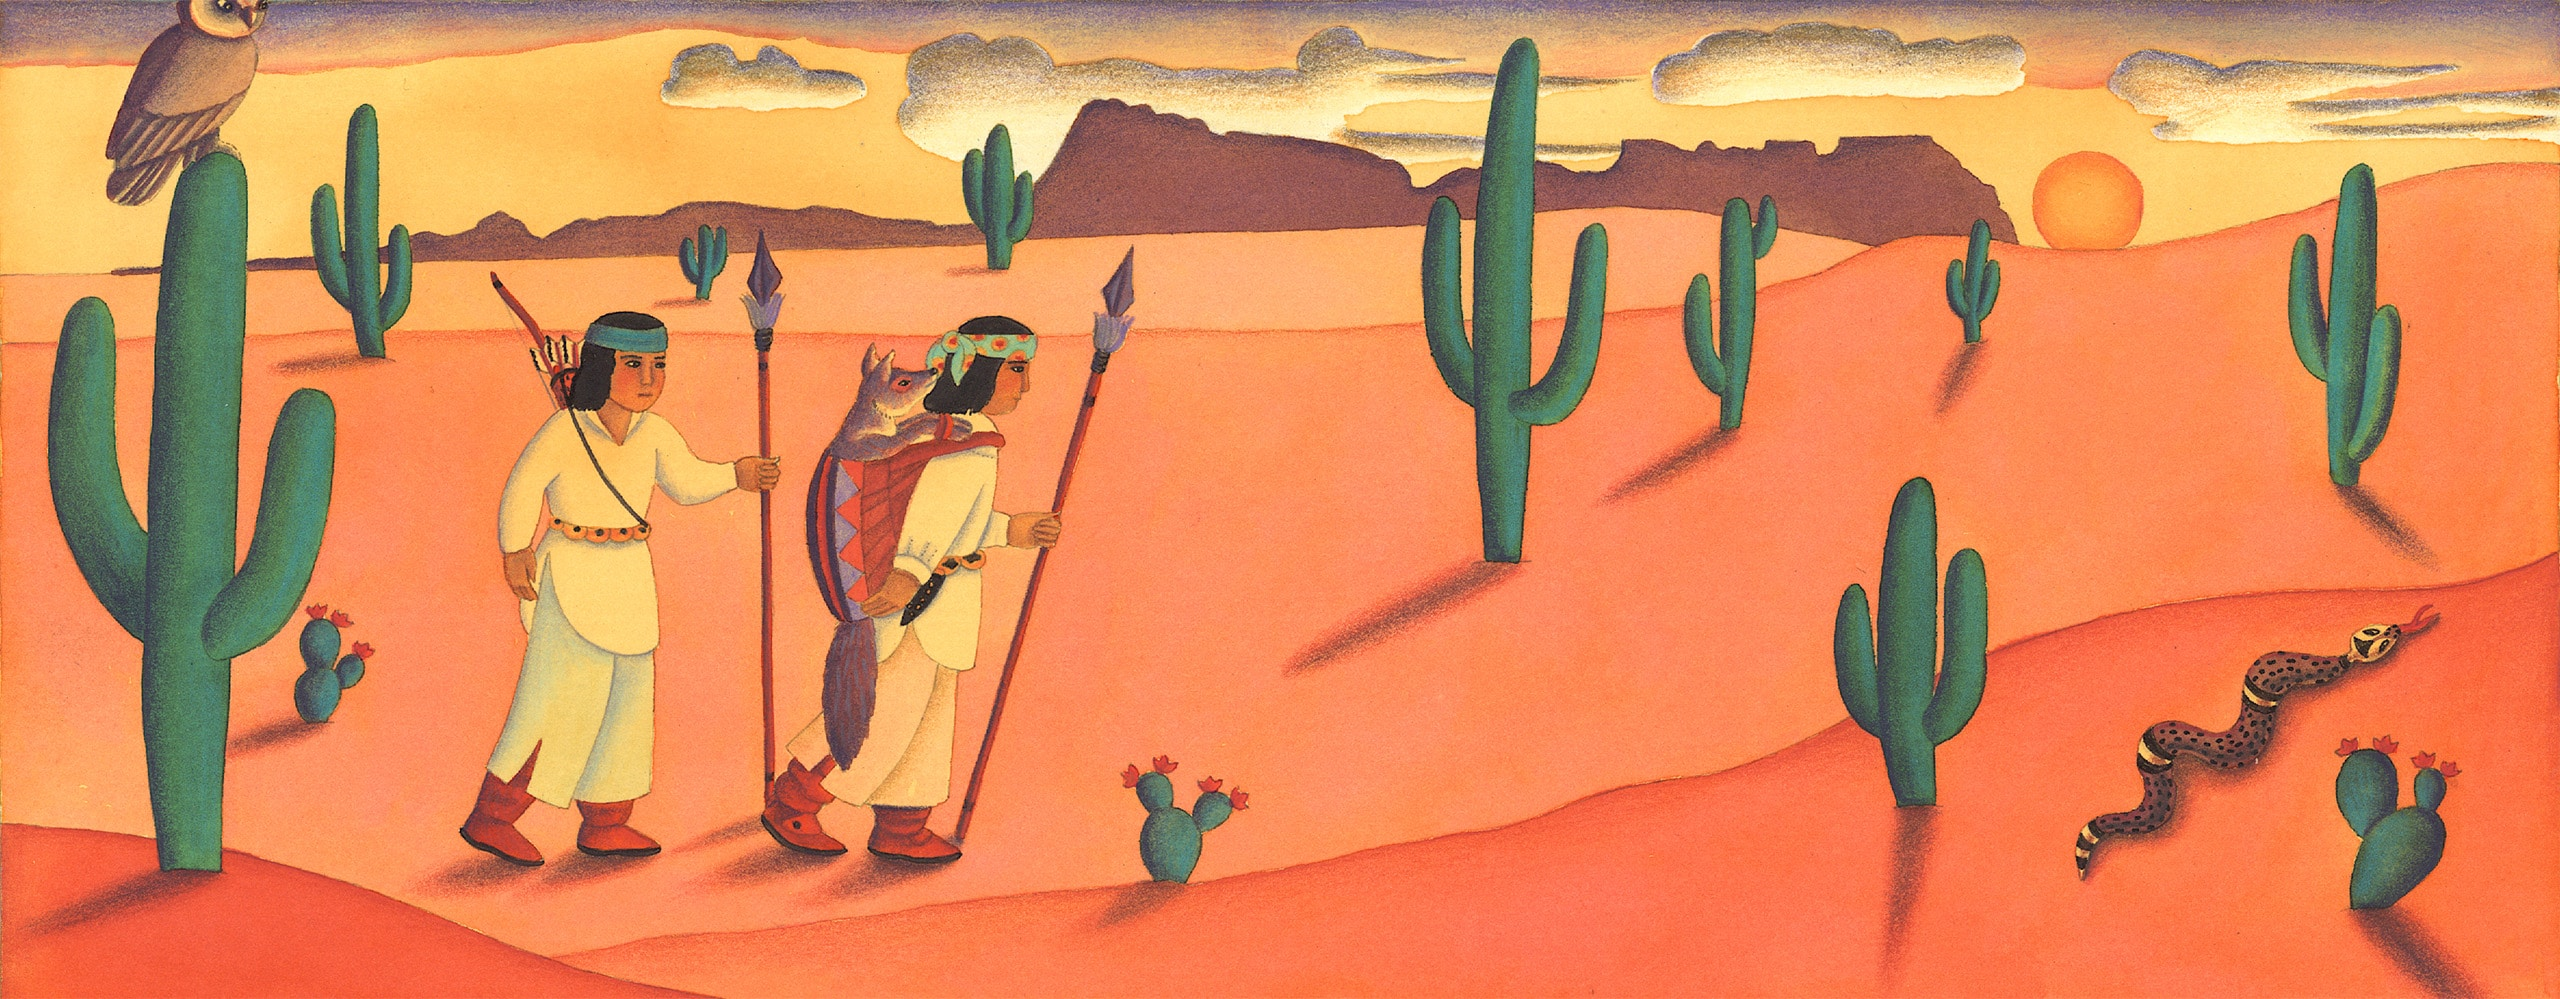 Coyote Girl Gallery. 'Banner image'